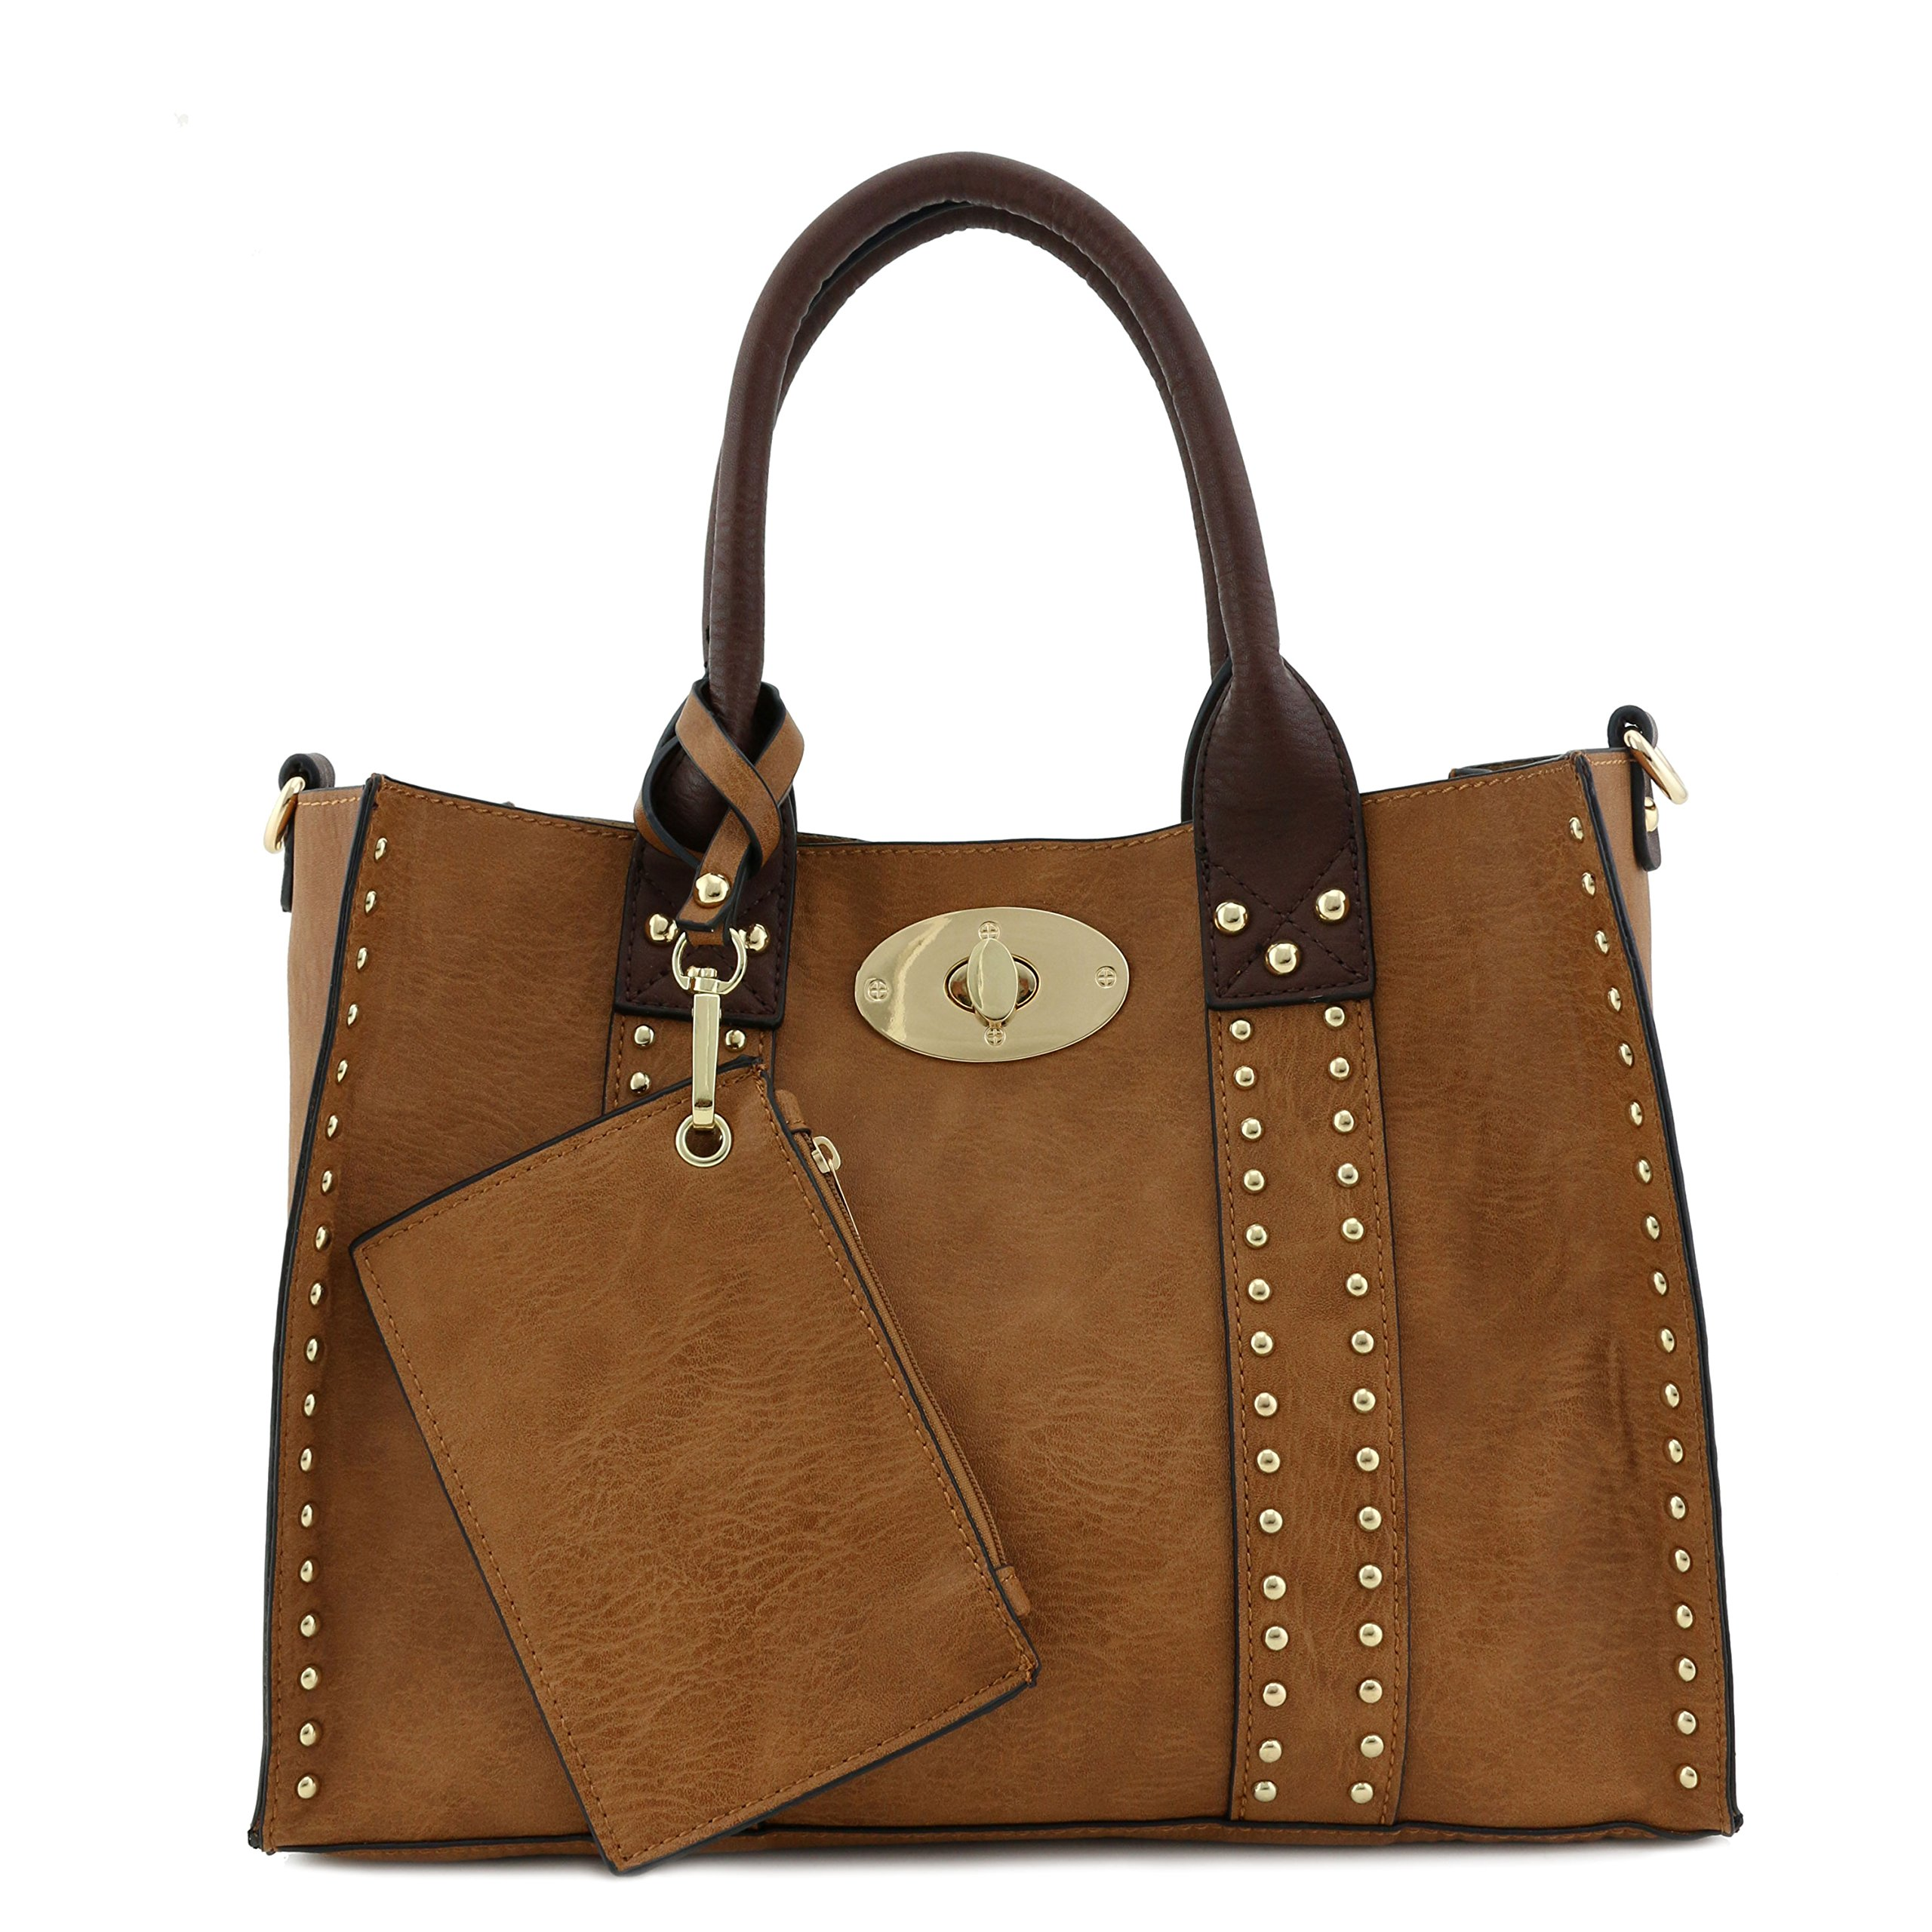 477389231 Brown Leather Crossbody Tote Bag | Stanford Center for Opportunity ...